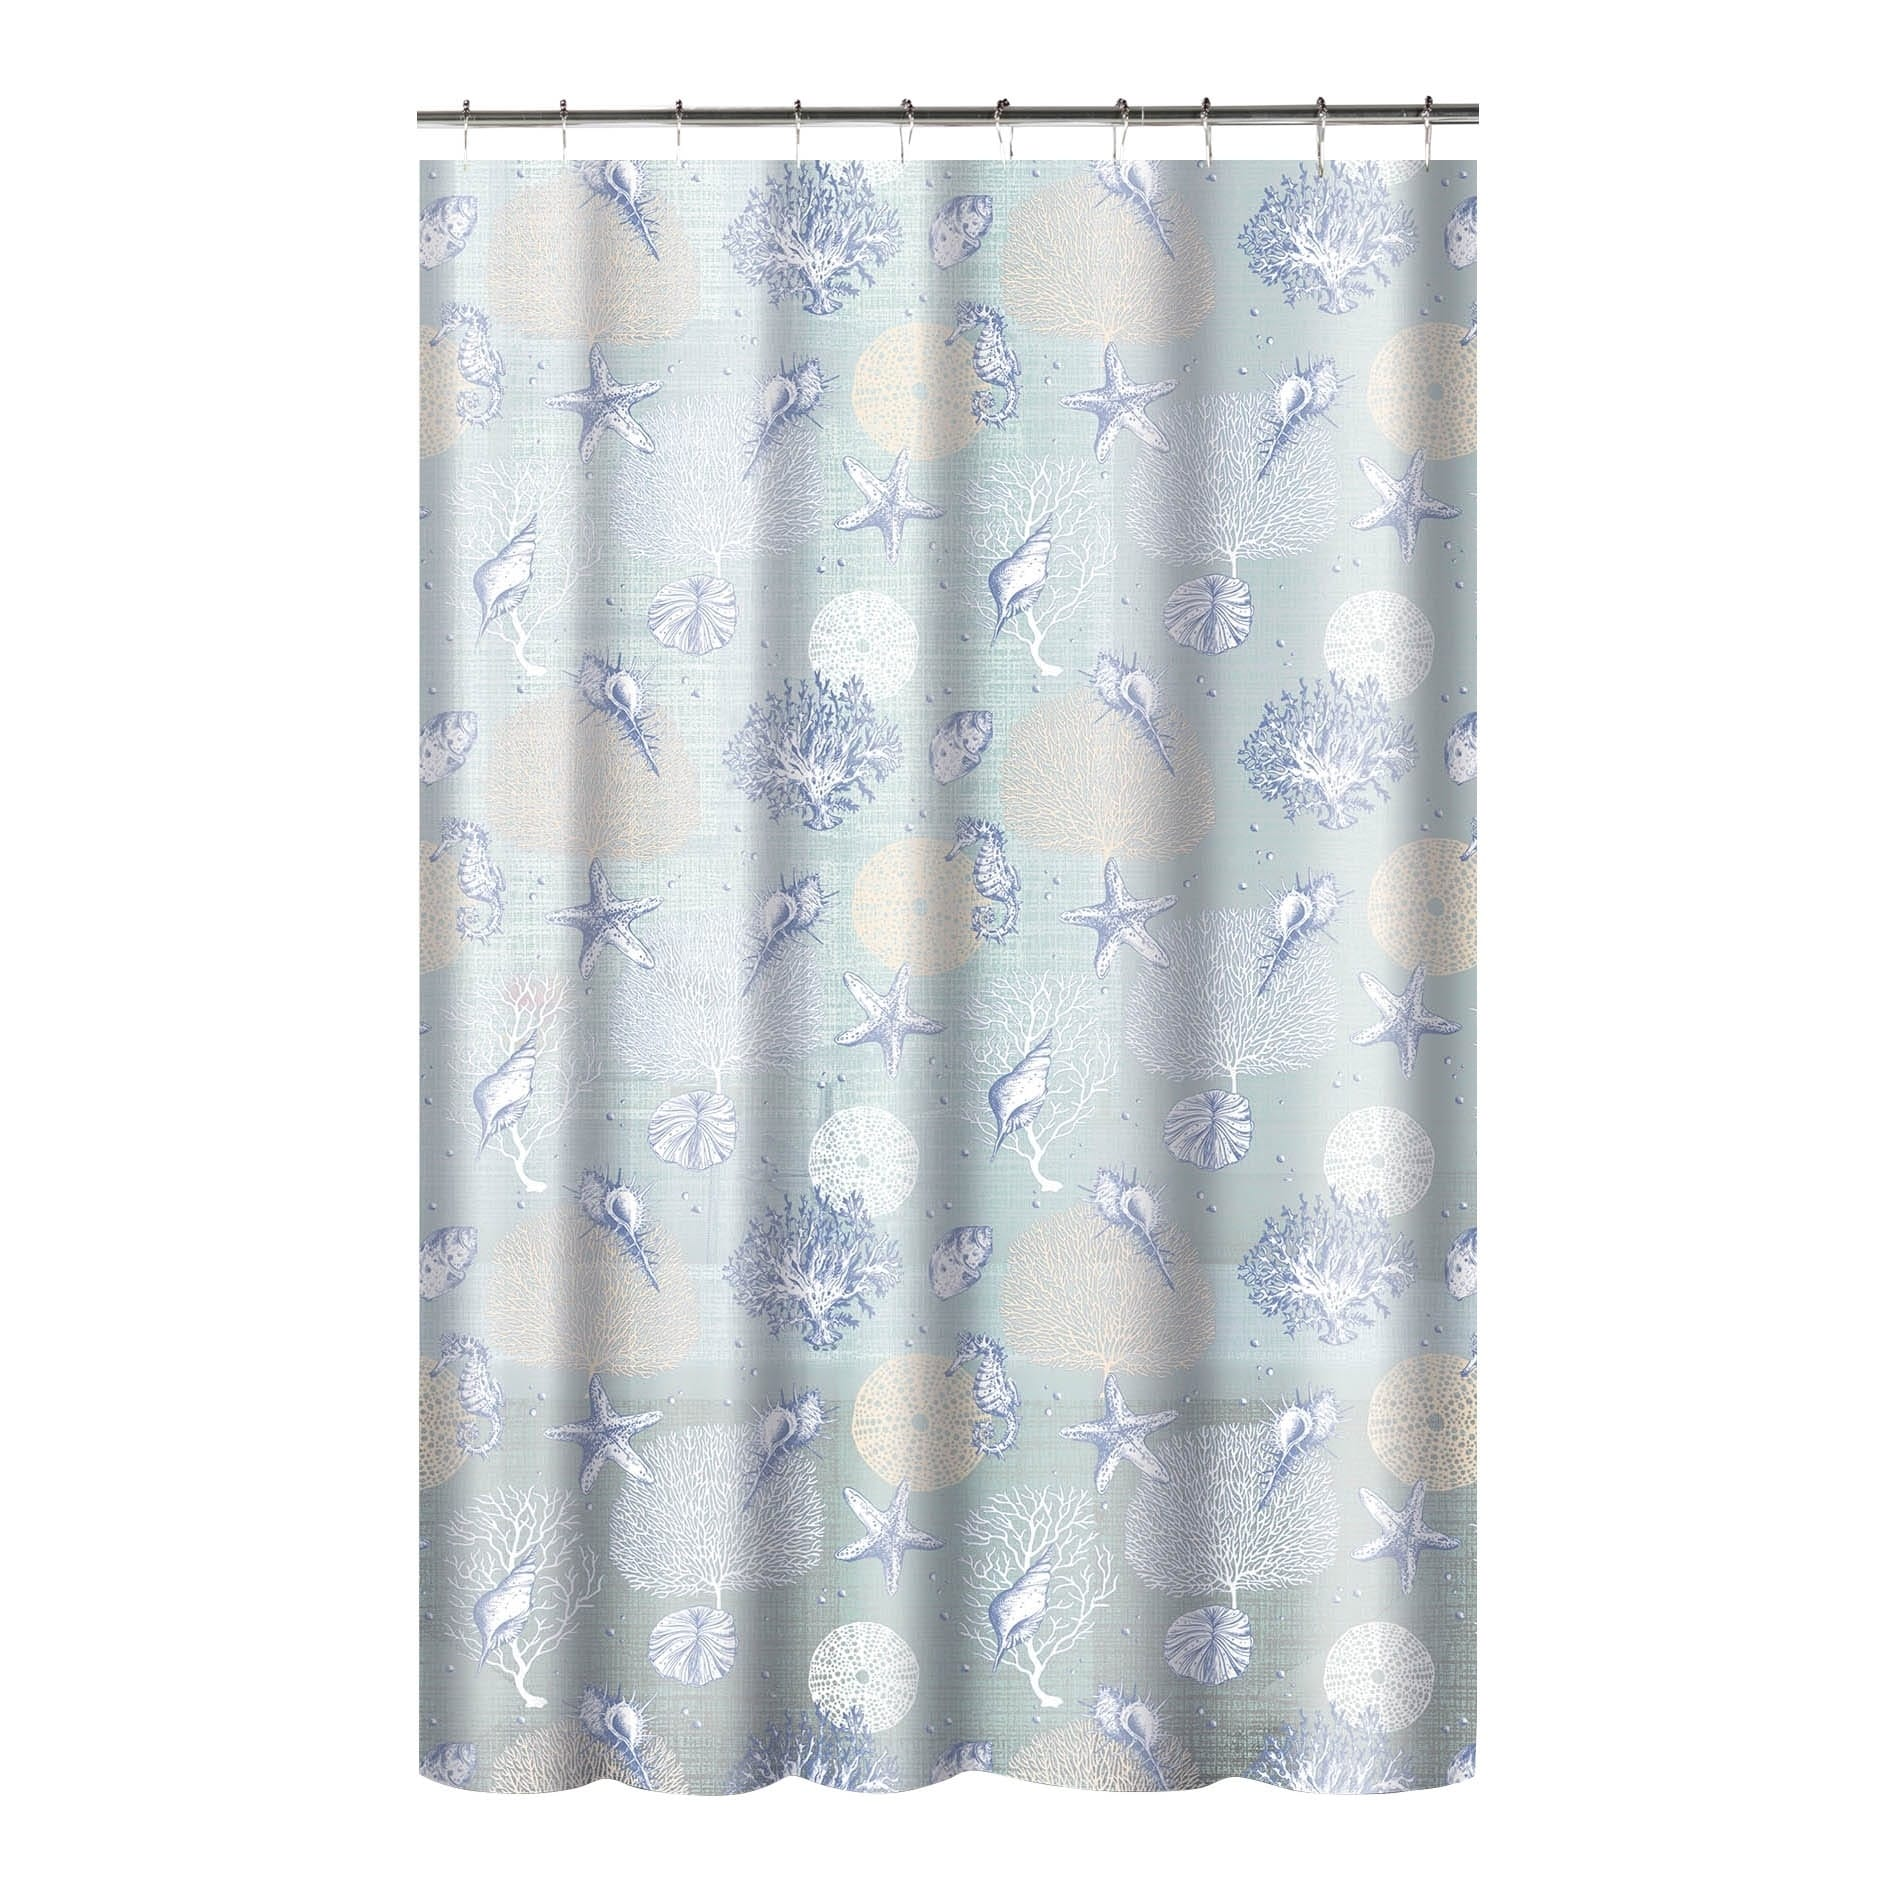 Shop Printed Coral PEVA EVA Shower Curtain With Metal Roller Hooks In Aqua